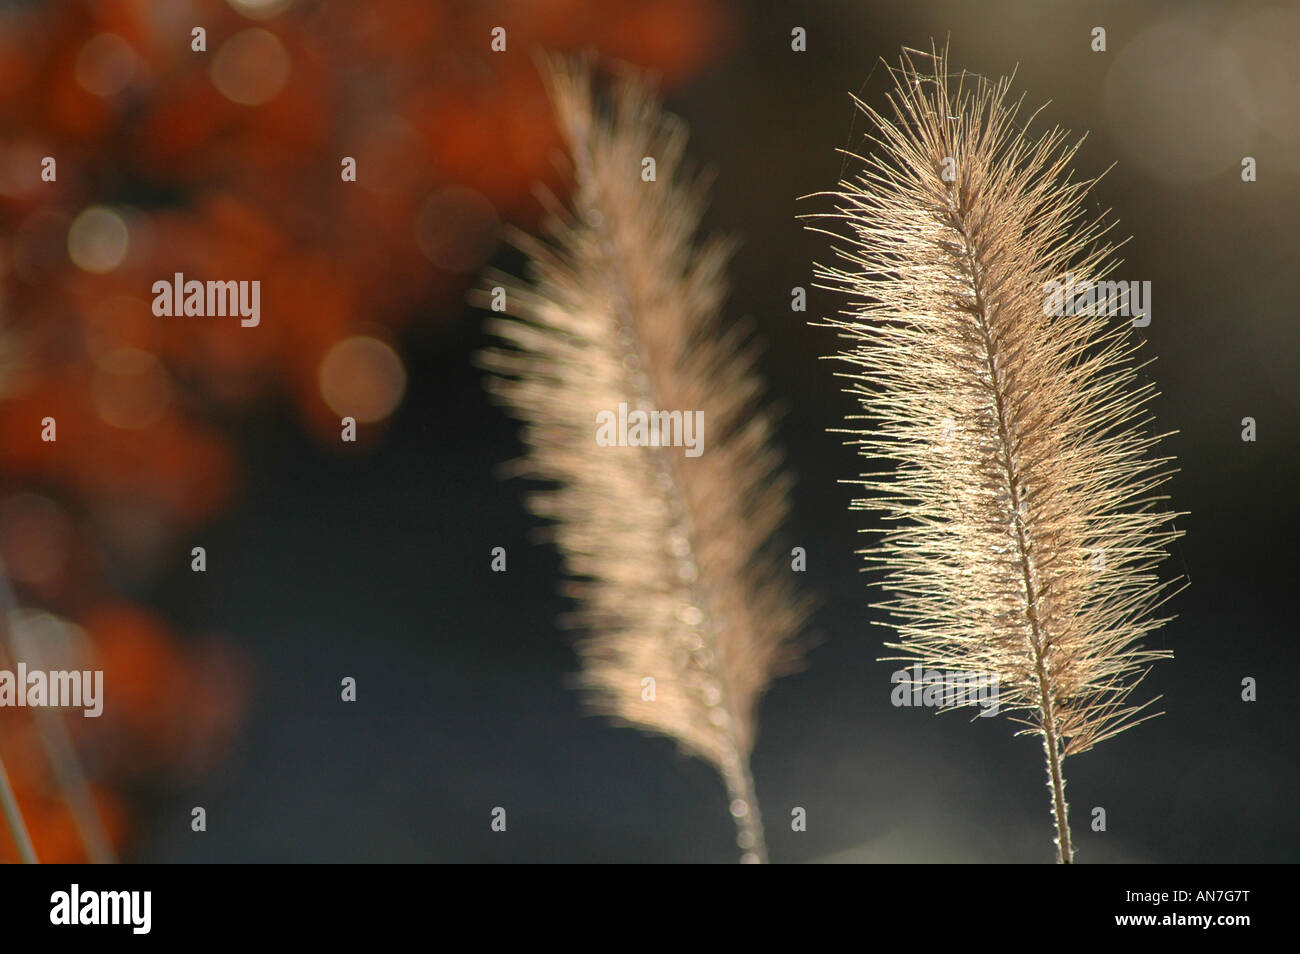 Teasel flowers in autumn - against blurred background - Stock Image